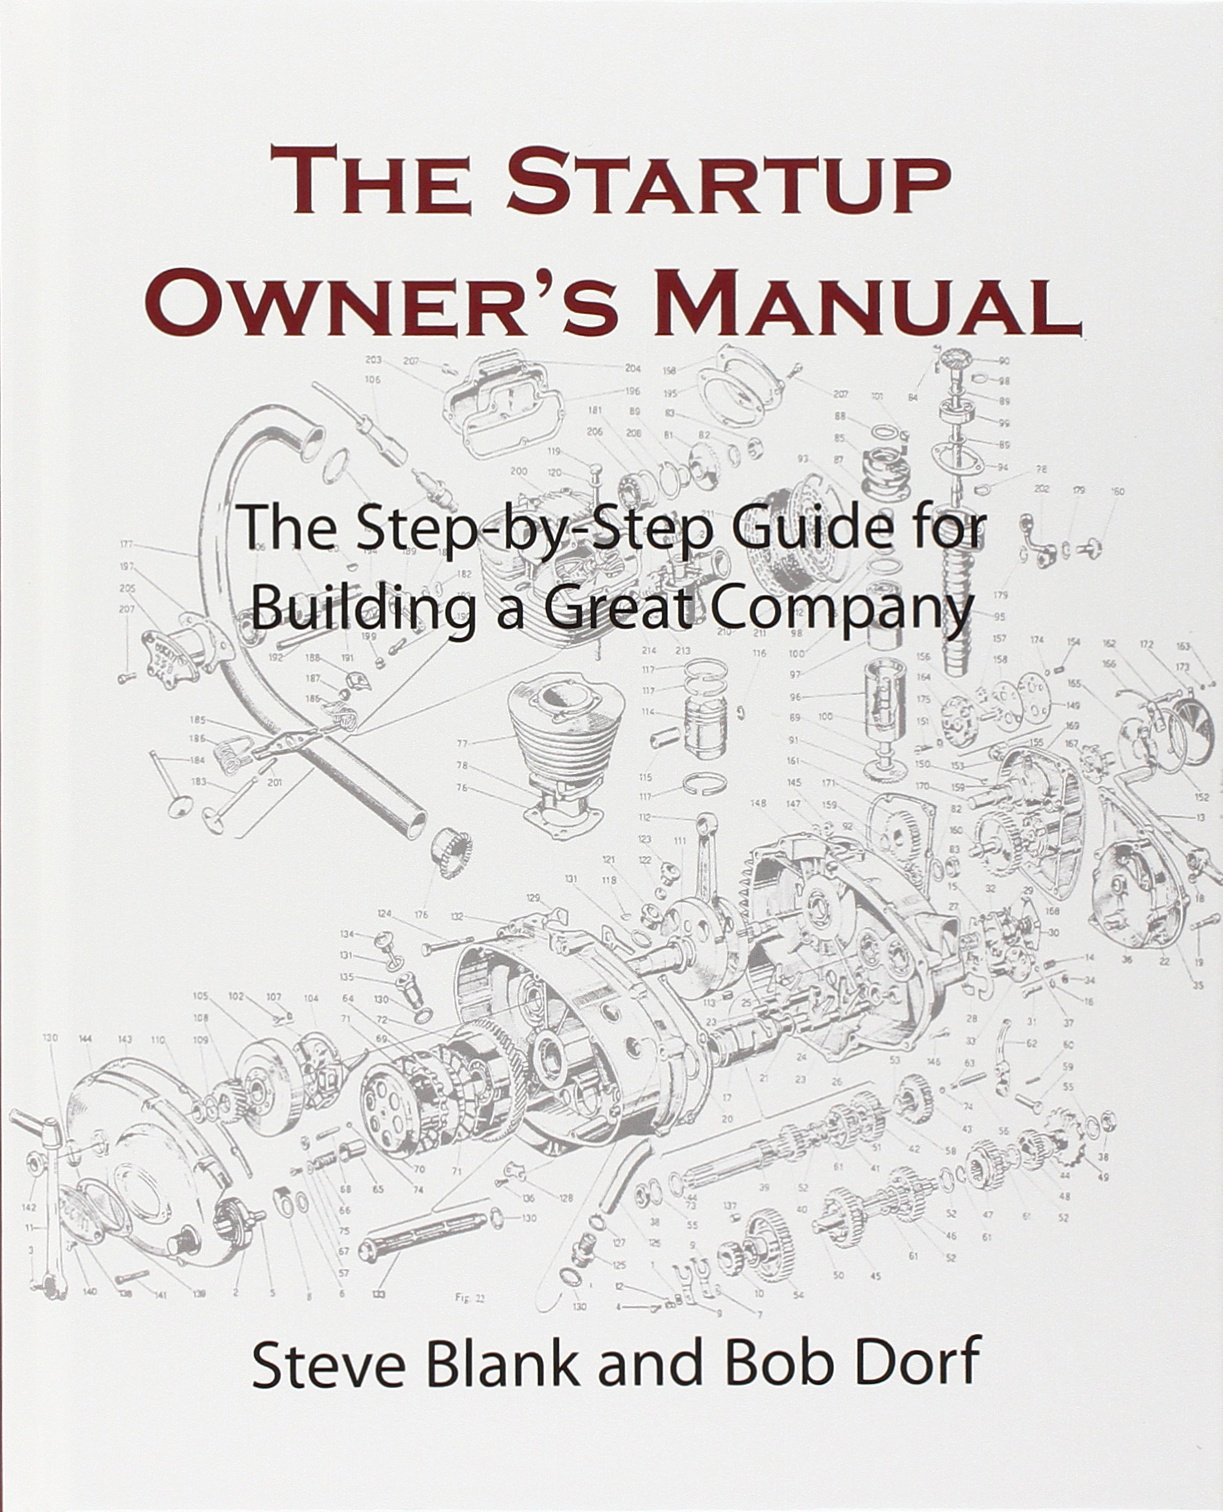 The startup owners manual the step by step guide for building a the startup owners manual the step by step guide for building a great company steve blank bob dorf 9780984999309 amazon books fandeluxe